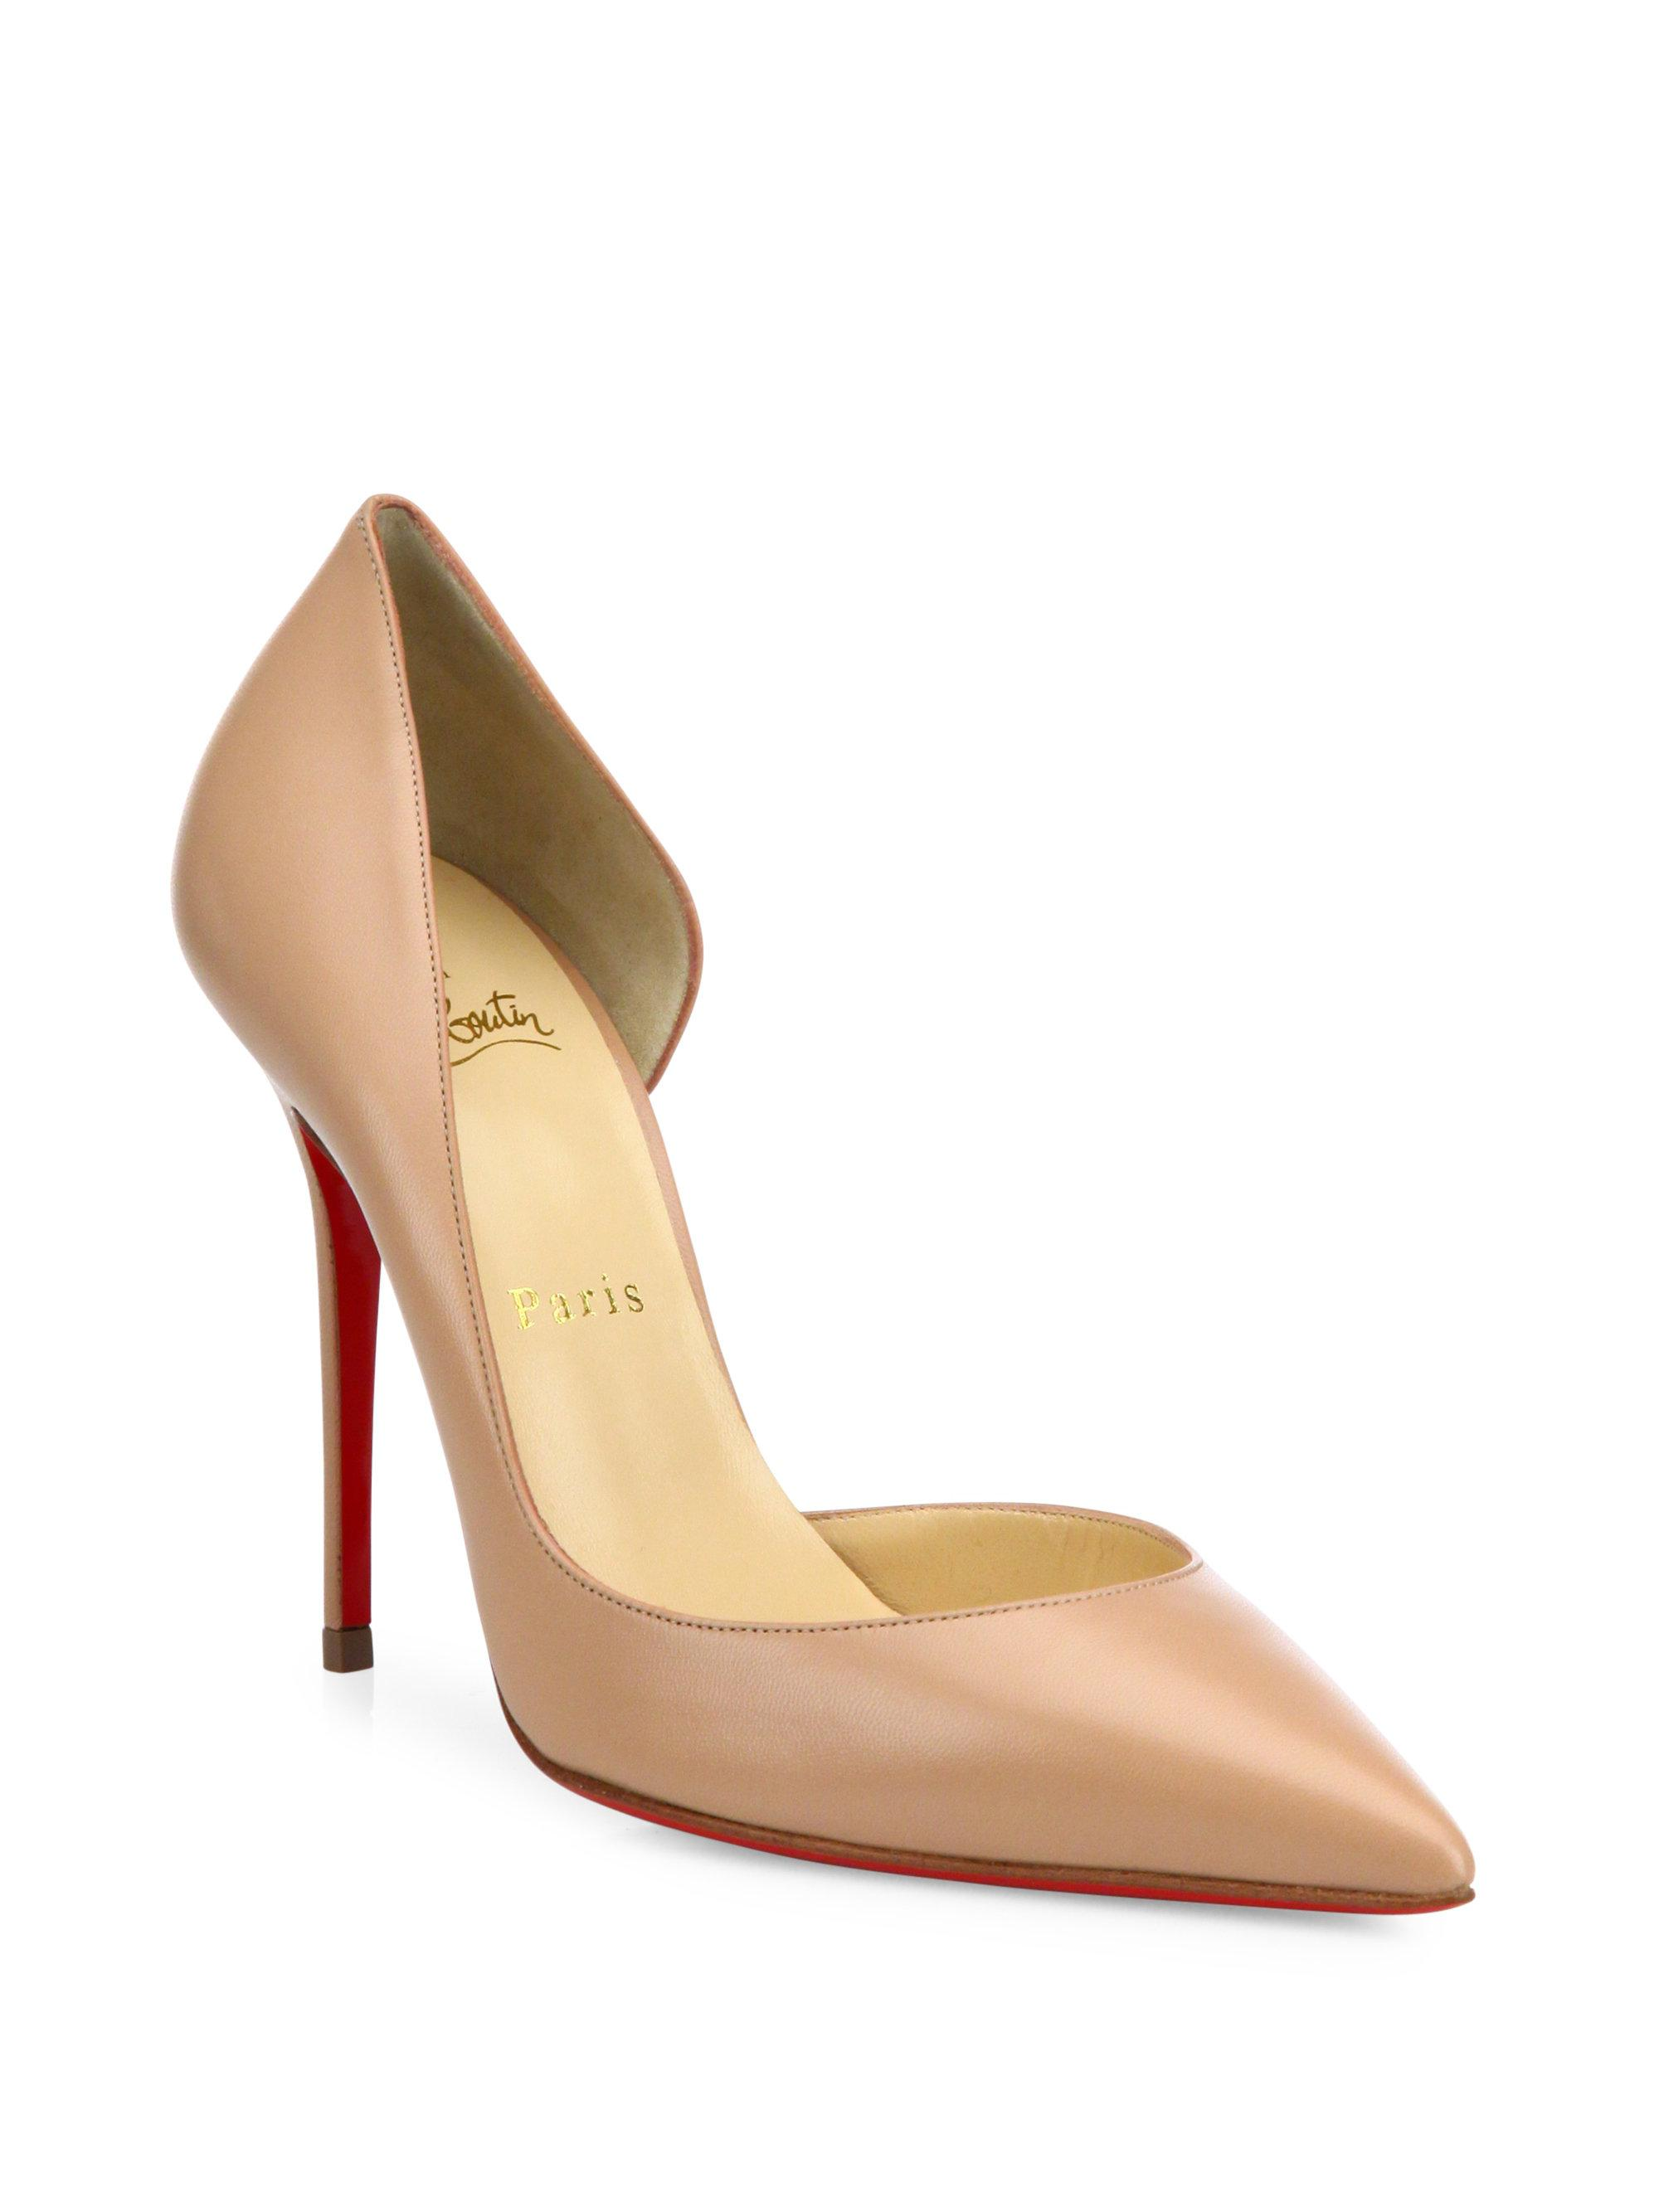 71c54b7cc3 Gallery. Previously sold at: Saks Fifth Avenue · Women's Christian  Louboutin Iriza ...